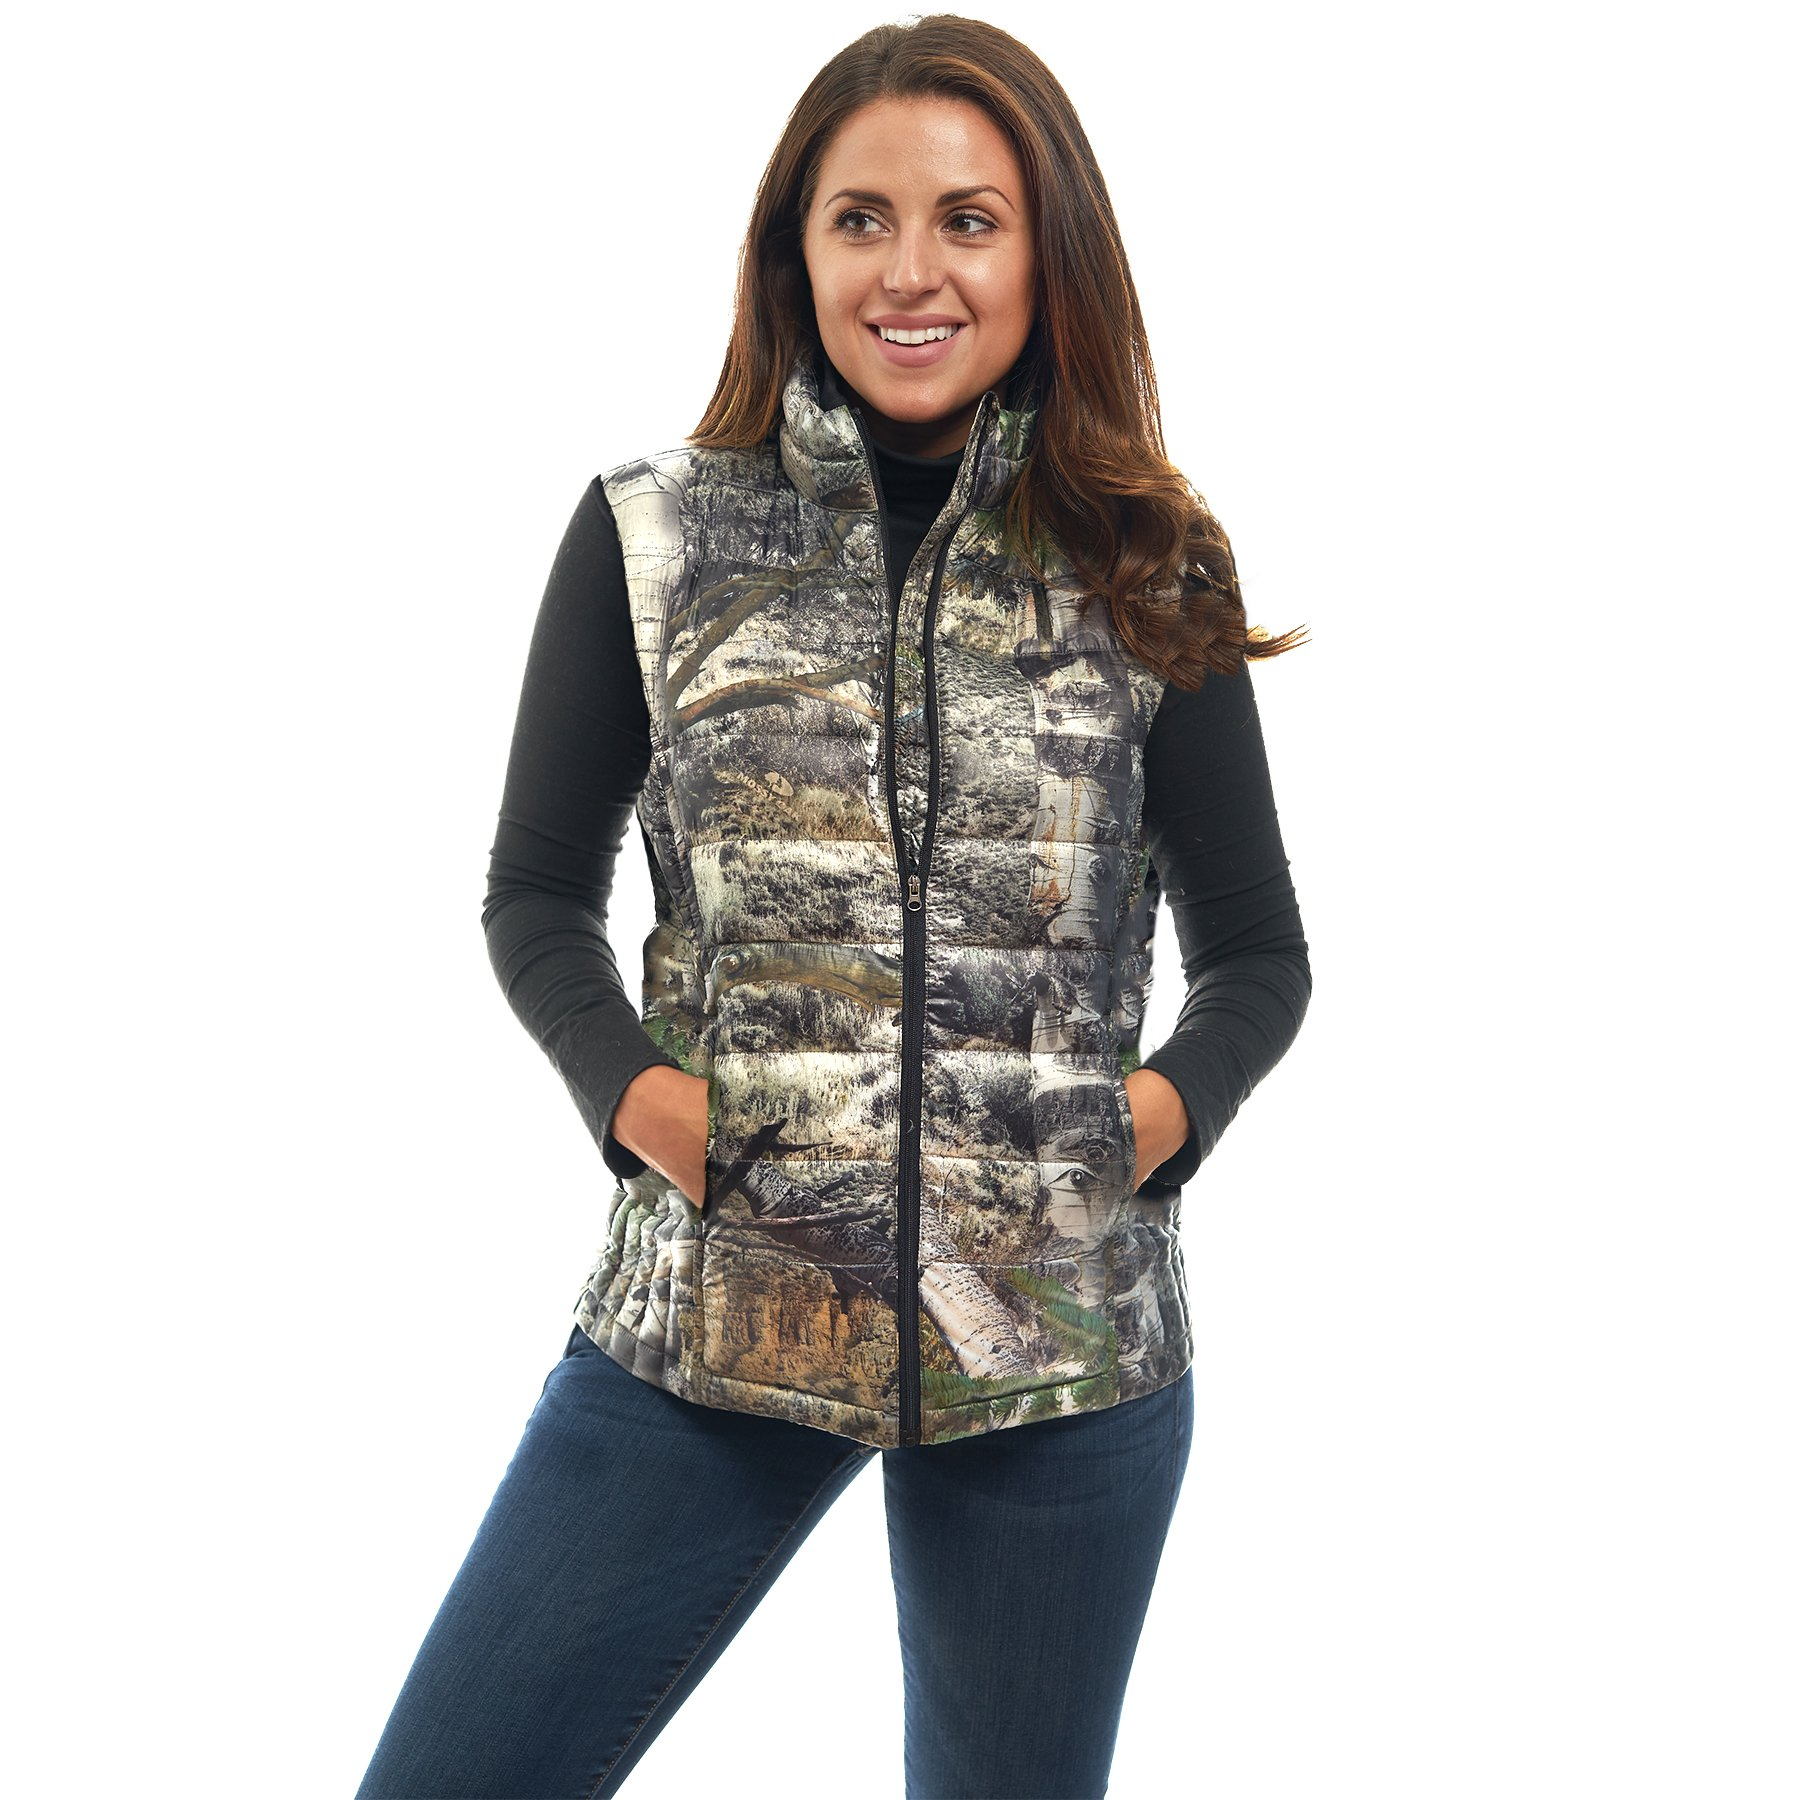 TrailCrest Women's Packable Ultra Lightweight Down Vest, Outdoor Puffer Vest, Mossy Oak Mountain Country Camo (X-Large)